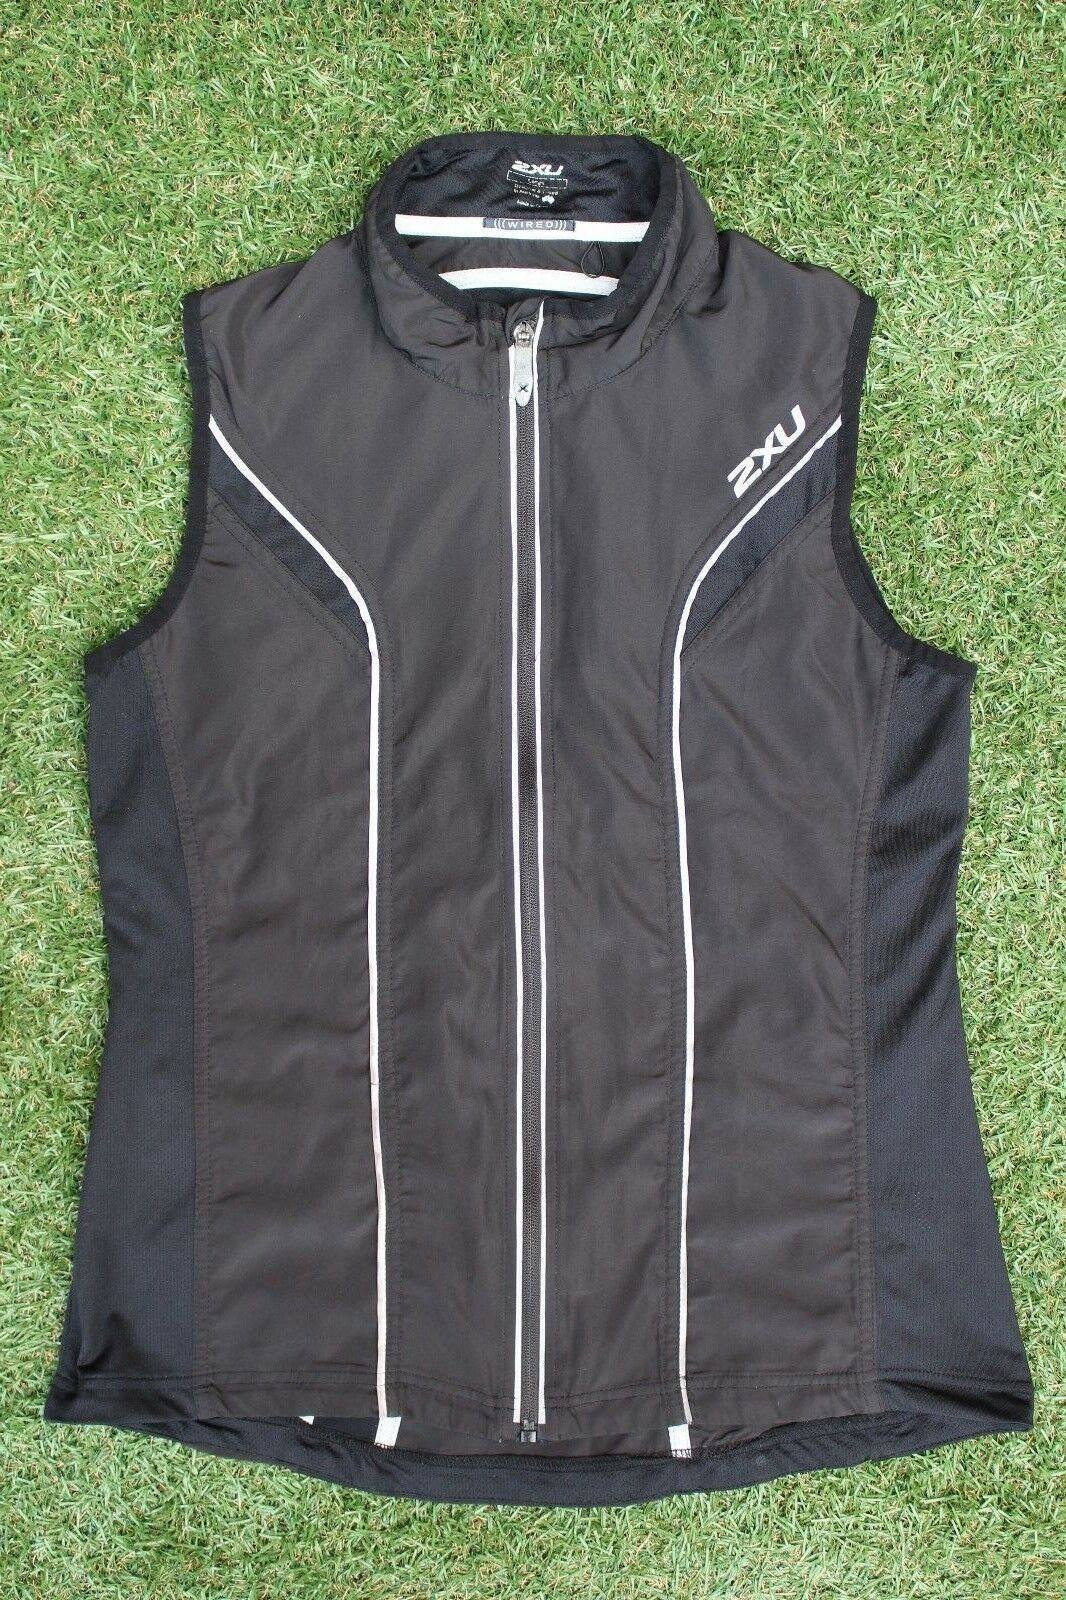 2XU Wired Road  Cycling Running Triathlon Gilet  Large 38 40  Chest  In VGC  waiting for you